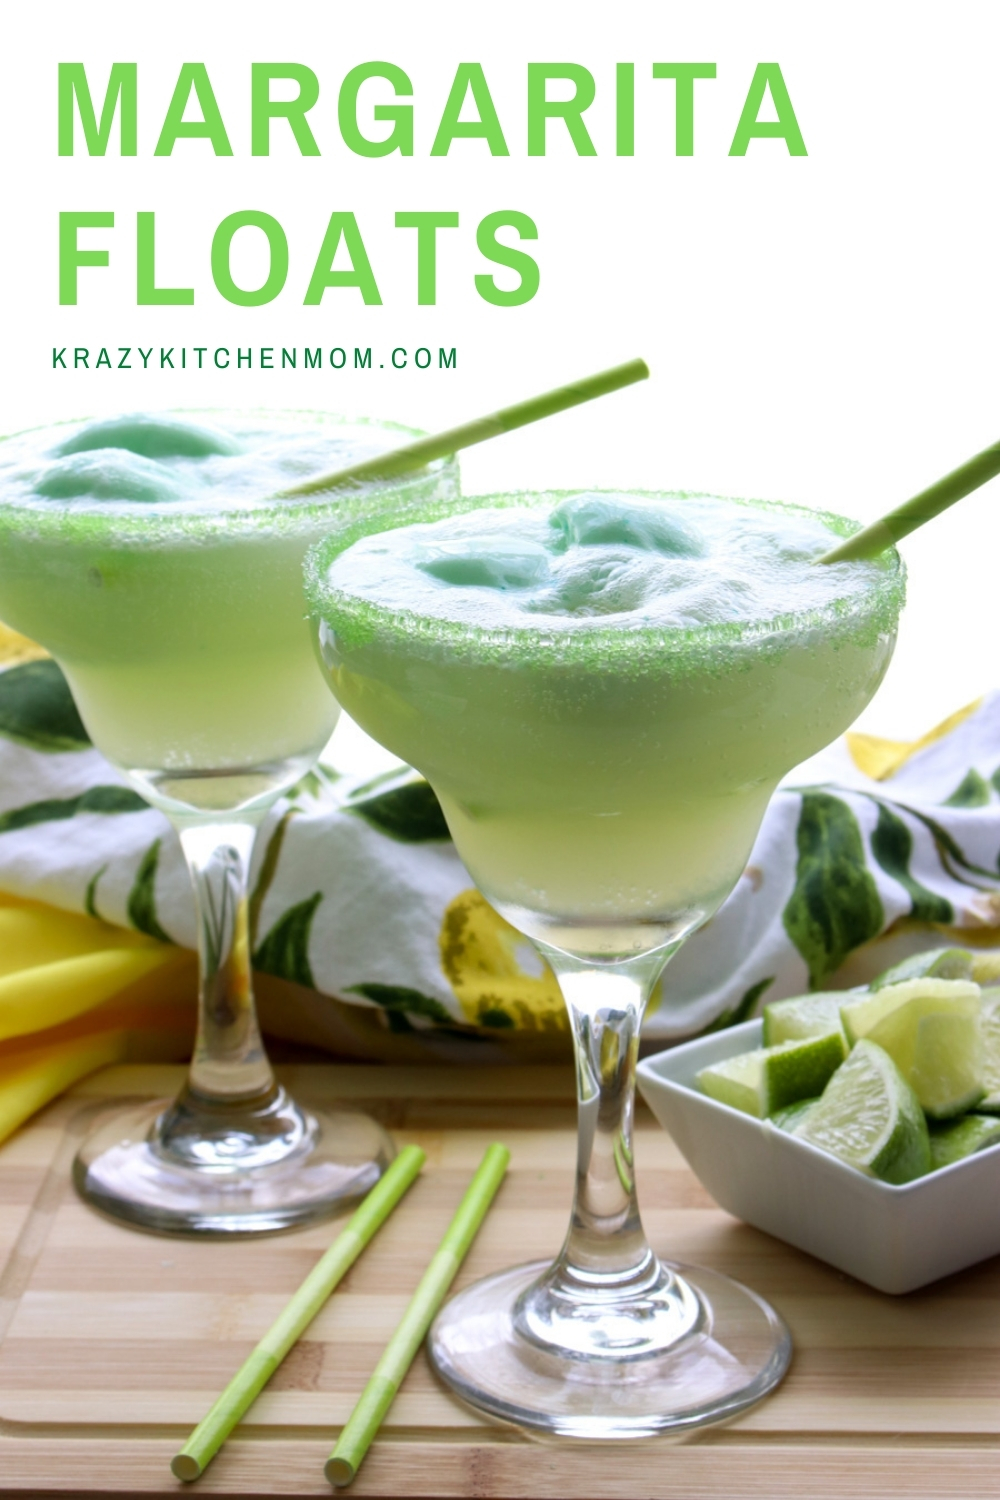 Drink or dessert? Either way, this drink will liven up any party or get-together. It's cold, refreshing, dairy-free, and a fan favorite. via @krazykitchenmom